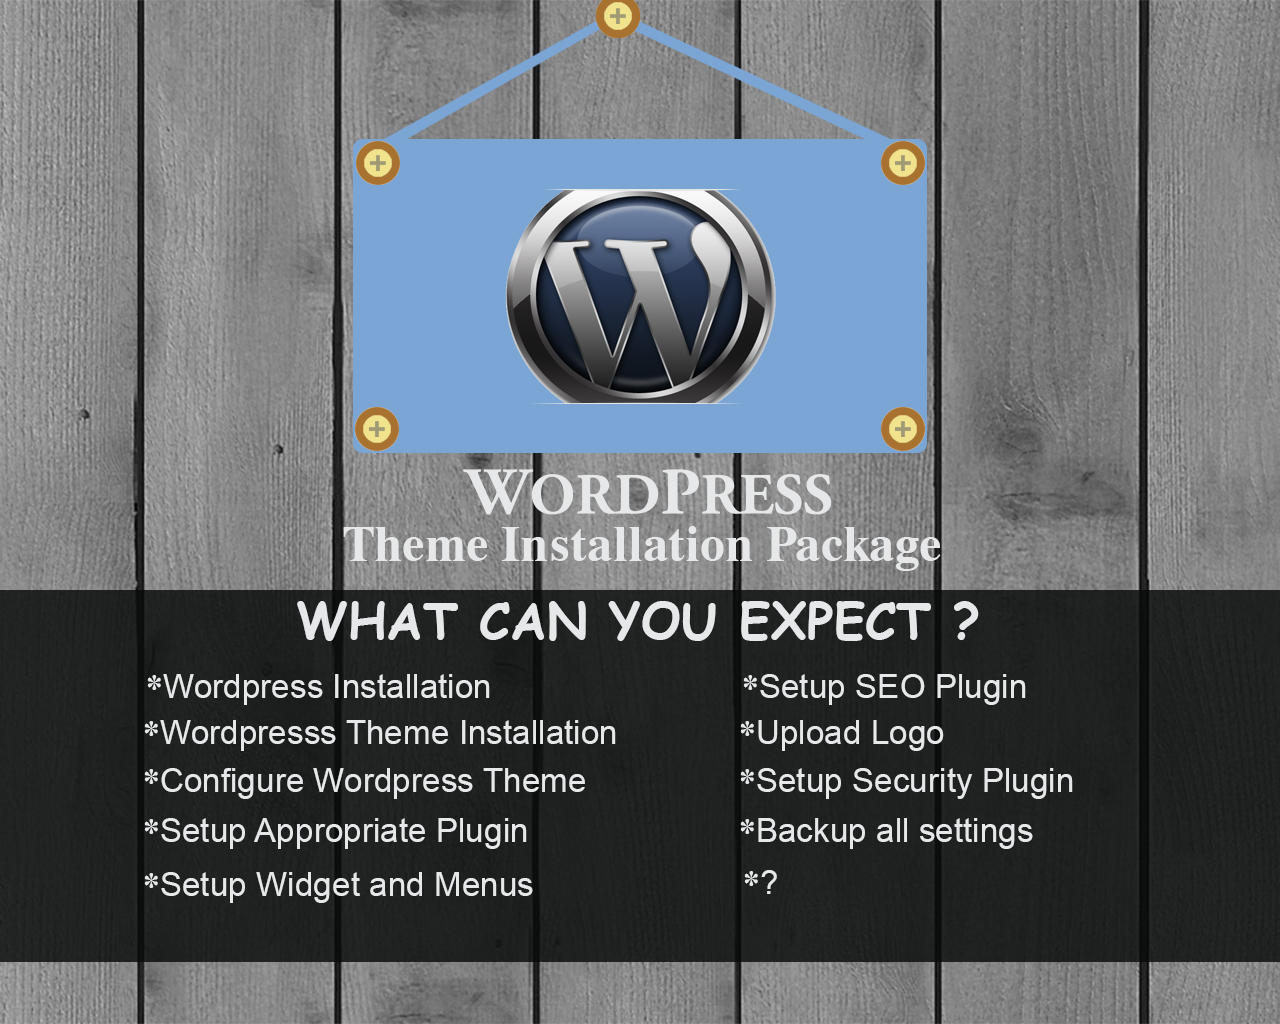 Wordpress Theme Installation Package by sanykhan - 74247